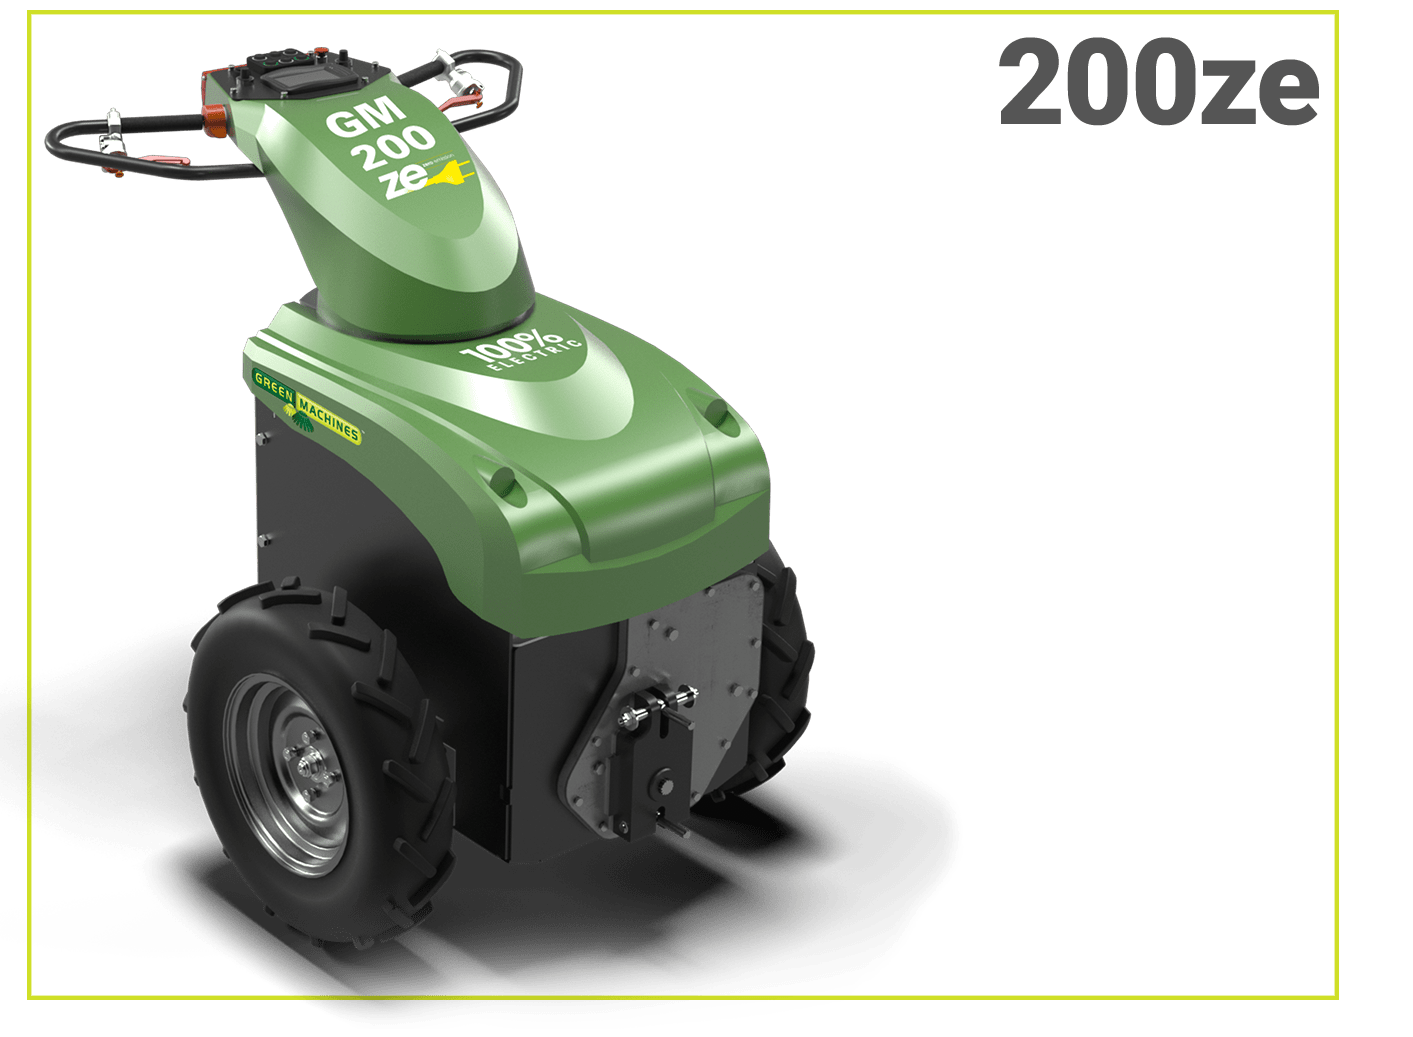 Green Machines Products 200ze